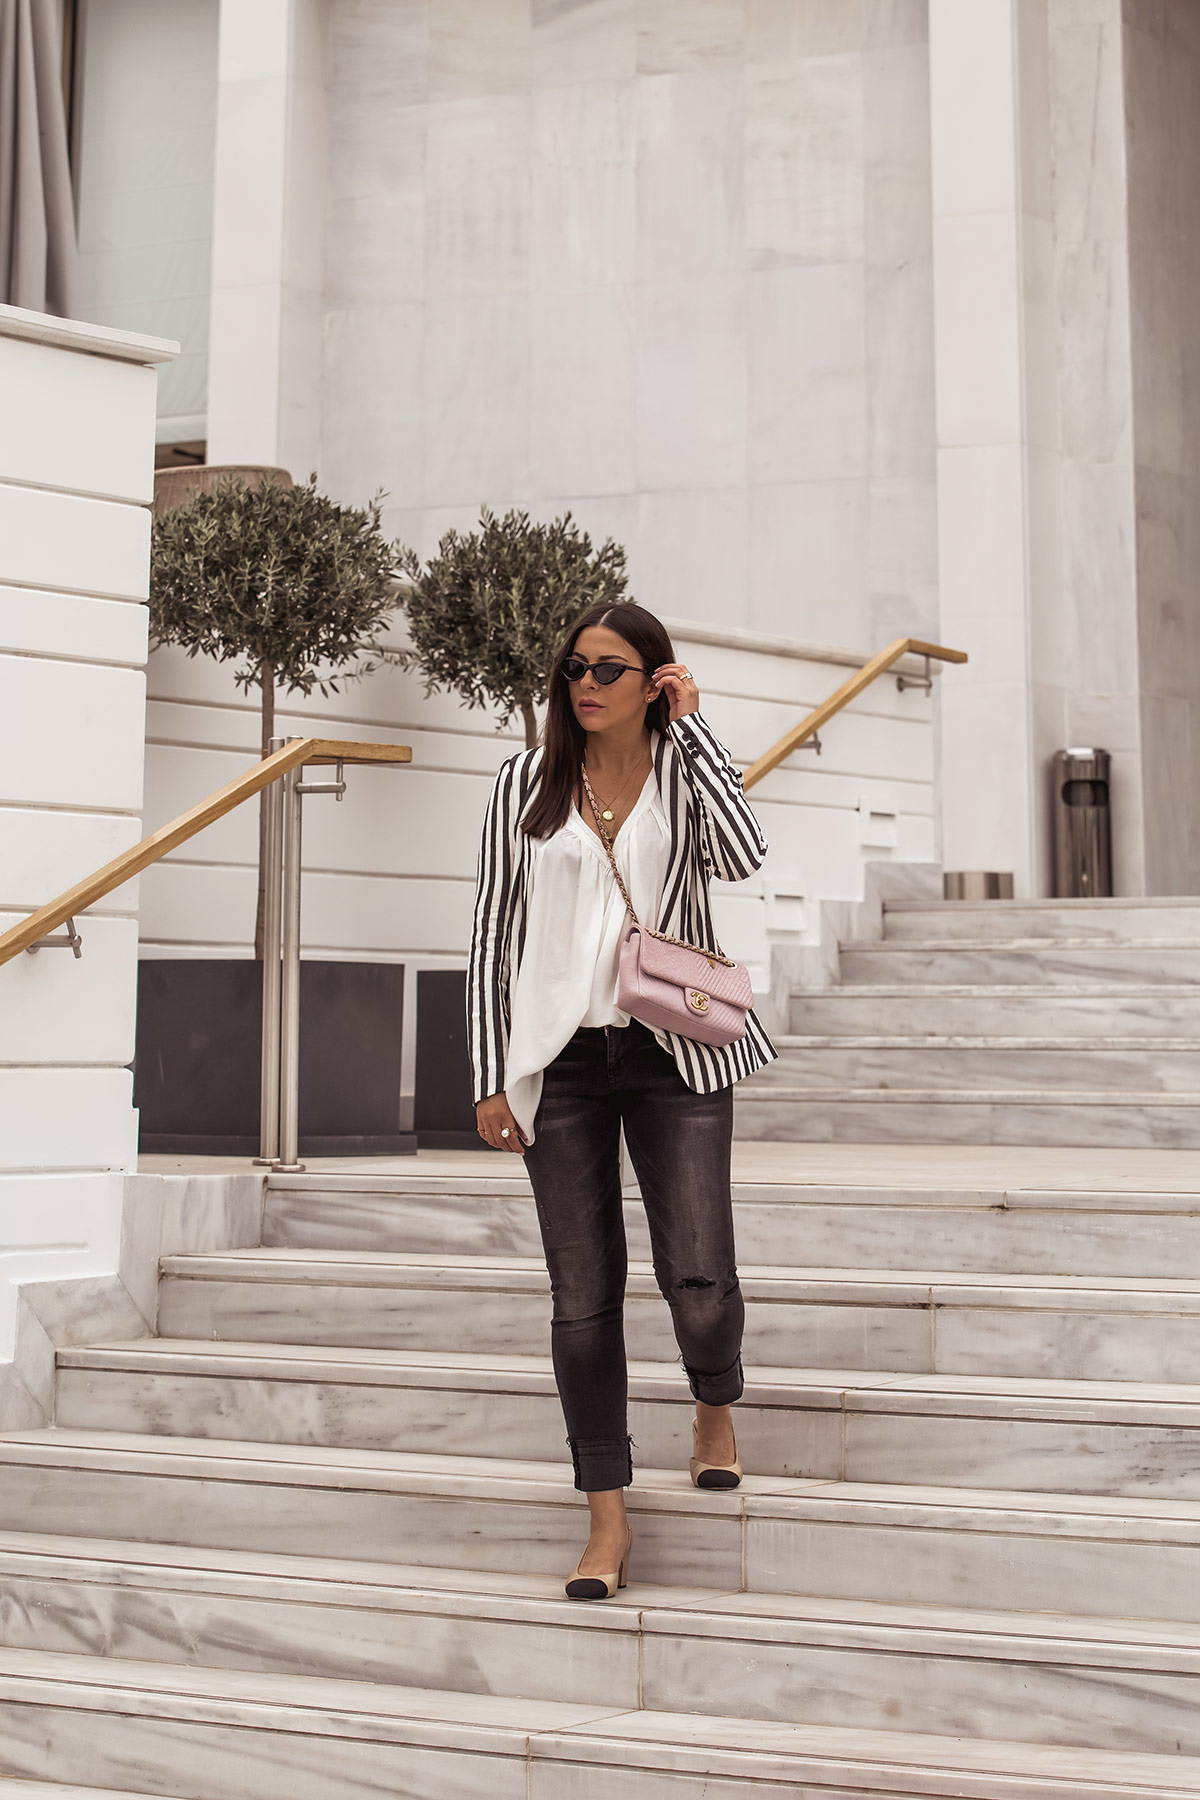 Stella Asteria showing how to wear a striped blazer for spring - striped blazer from H&M, dark grey jeans, Chanel slingbacks, white top and pink Chanel chevron bag, Le Specs cat-eye sunglasses